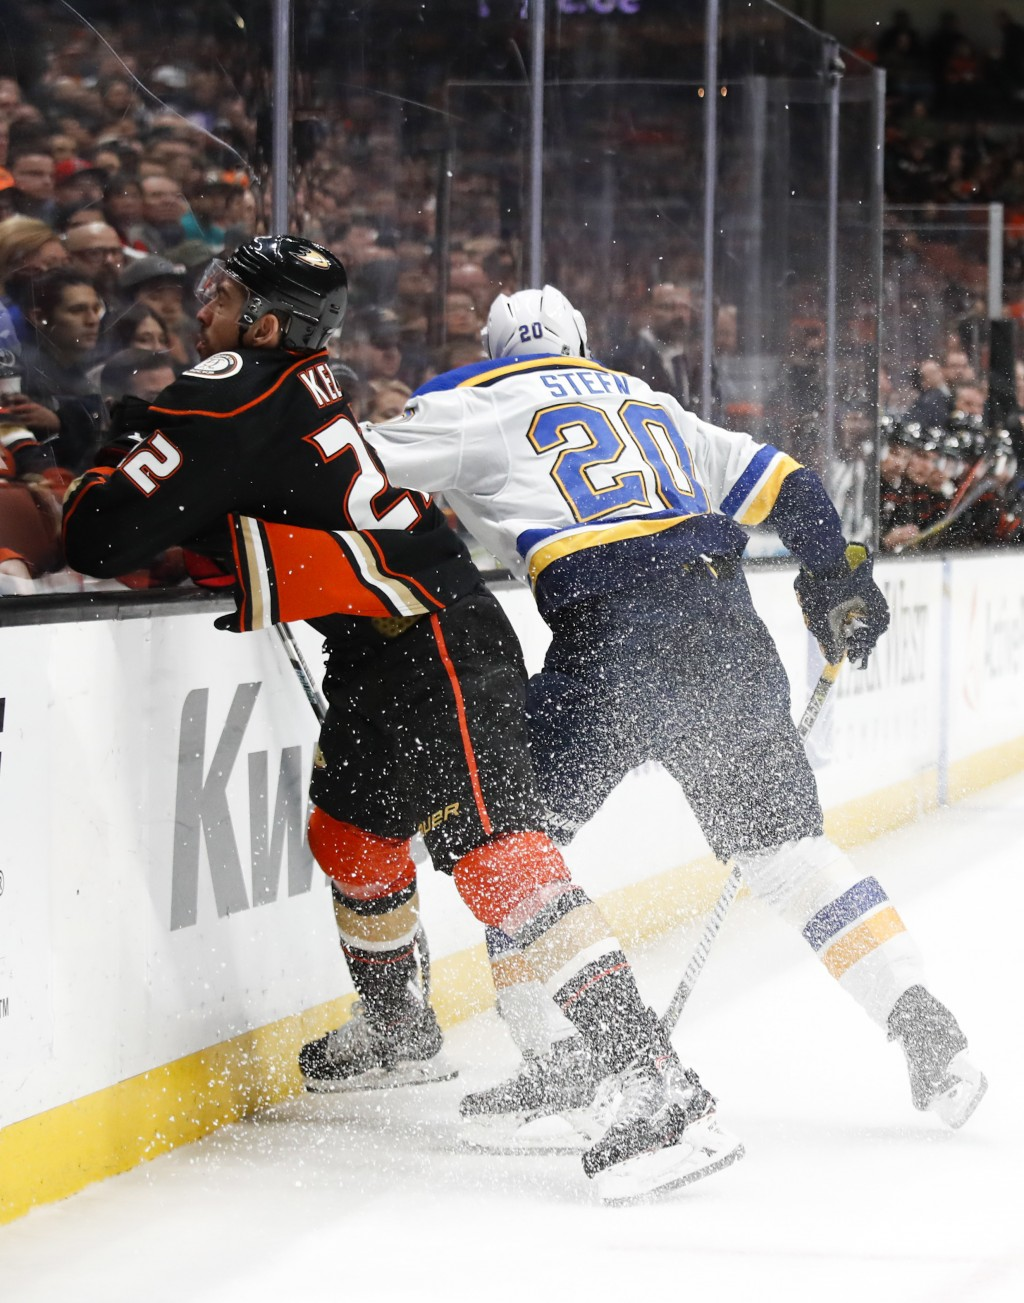 Anaheim Ducks' Chris Kelly, left, is checked by St. Louis Blues' Alexander Steen during the second period of an NHL hockey game, Monday, March 12, 201